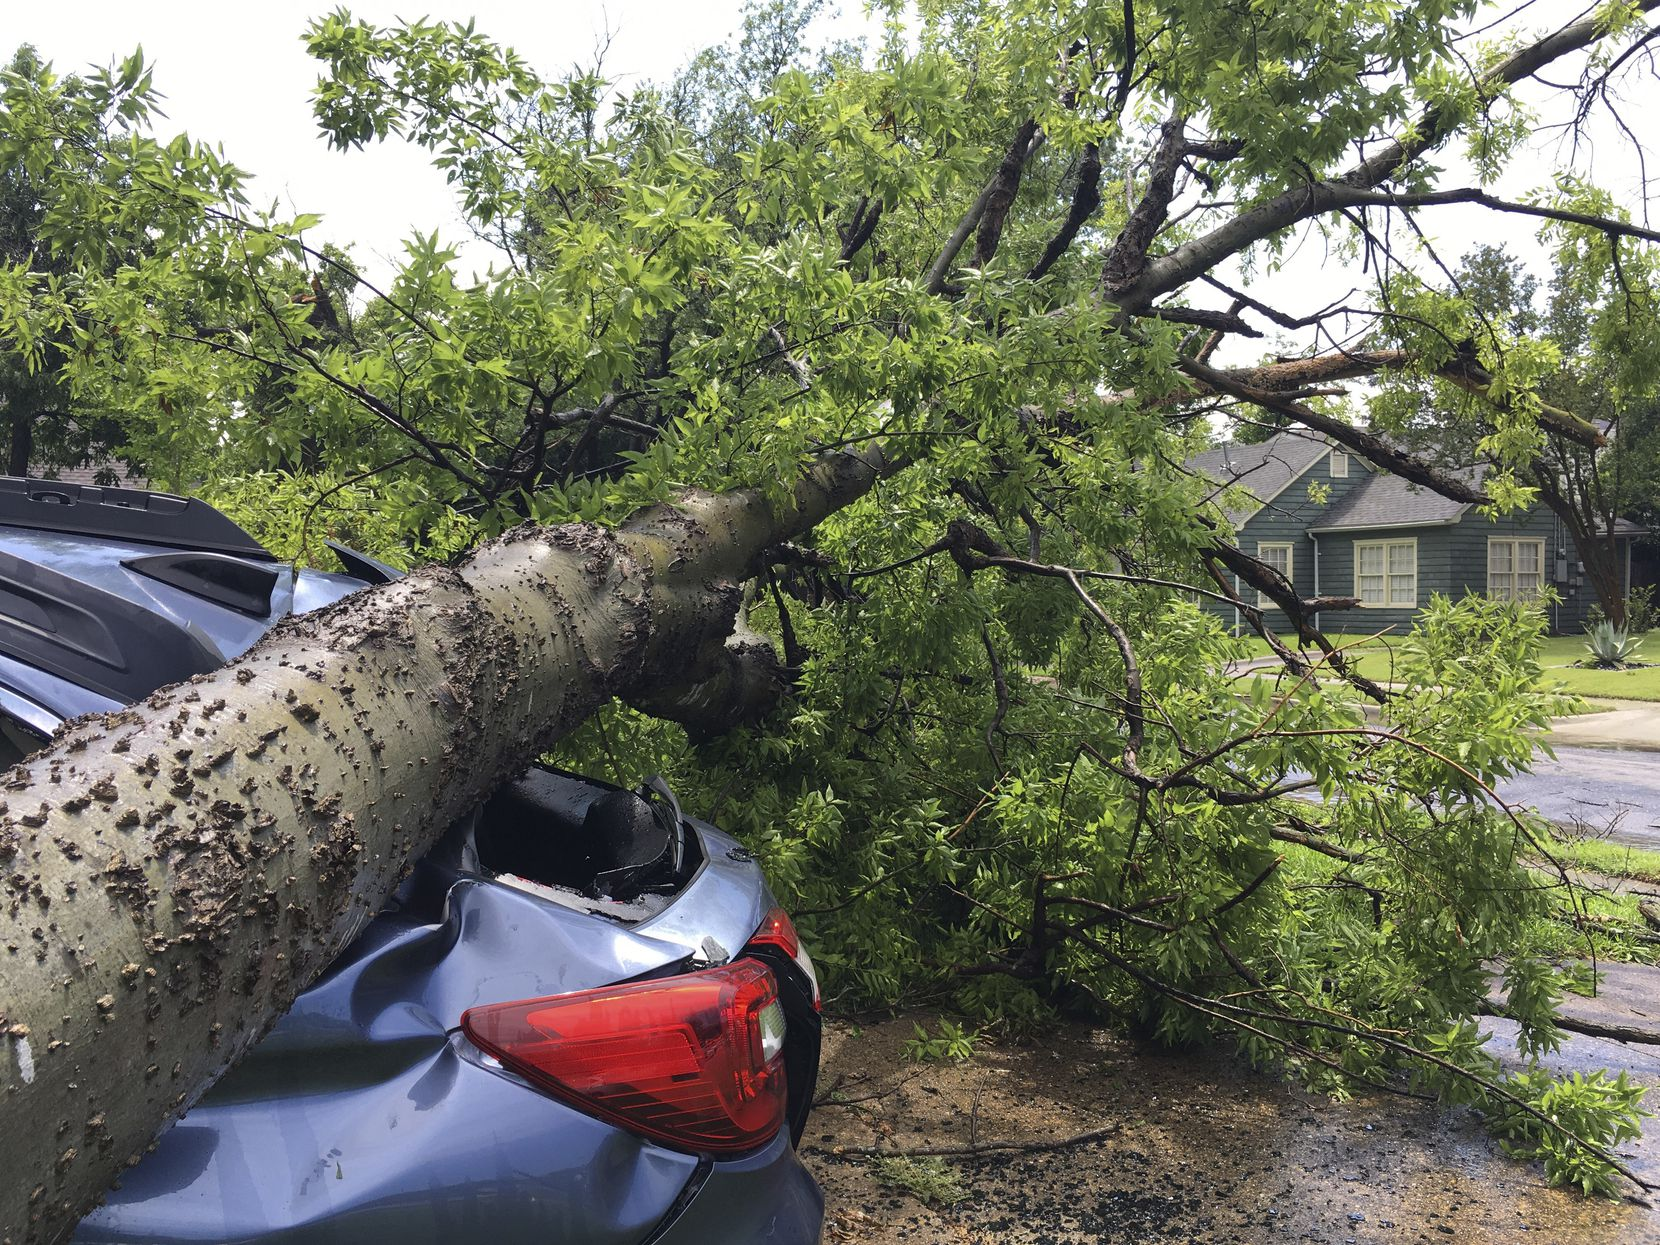 A tree from one property smashed a car in a neighbor's driveway when it fell in a severe storm in Old East Dallas on June 9.